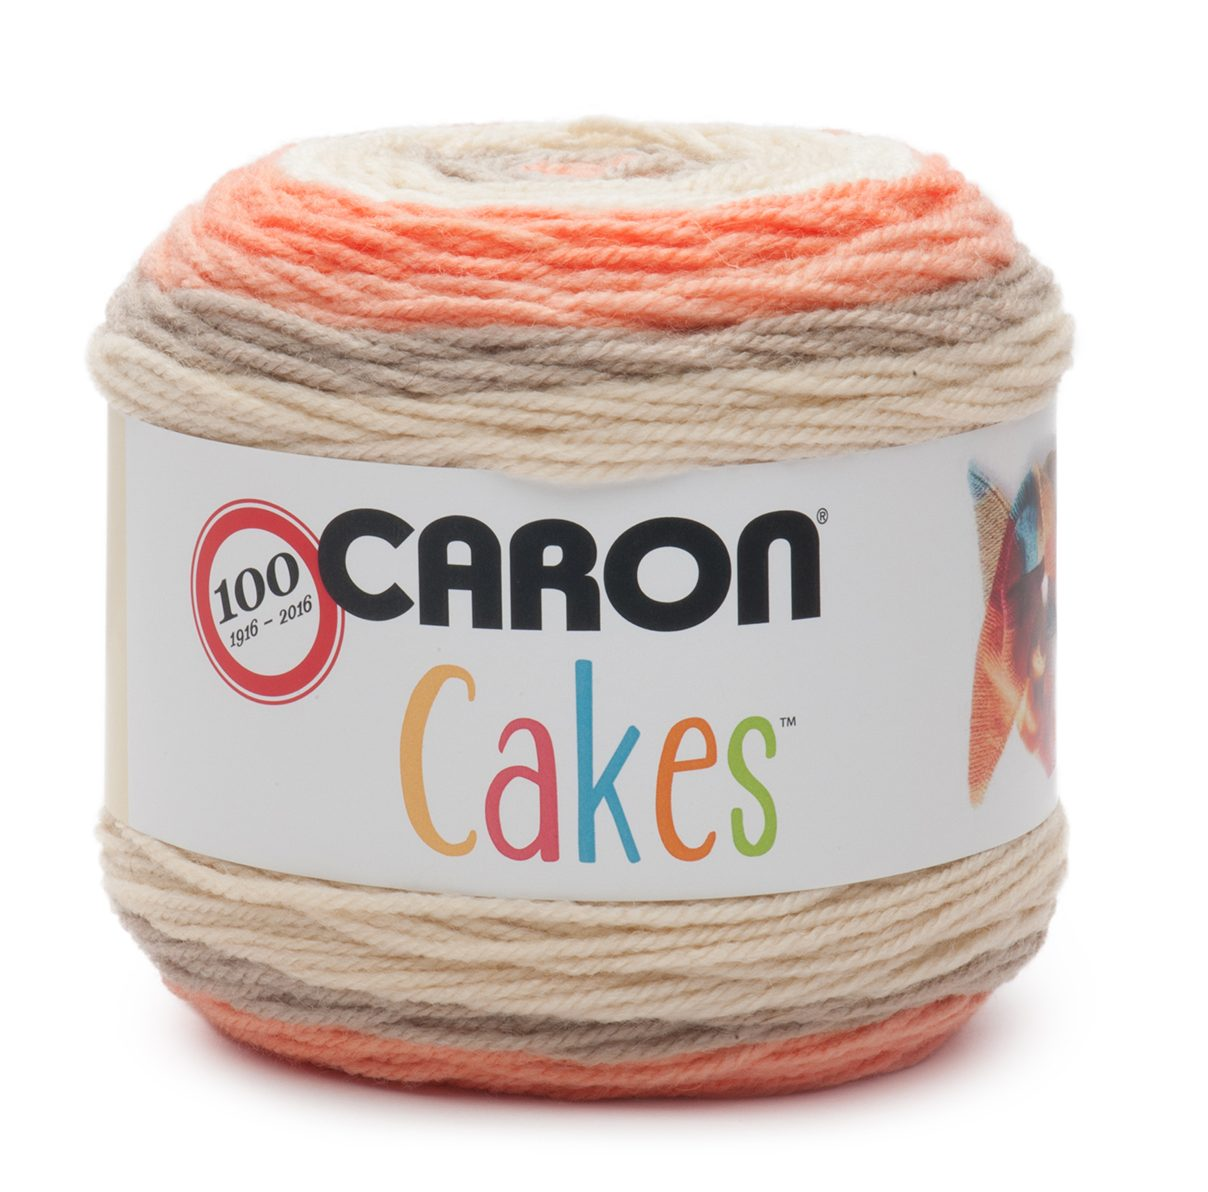 NEW Caron Cakes Strawberry Trifle Yarn - one of 8 new colorways for 2017 plus free patterns featuring the original Caron Cakes colors